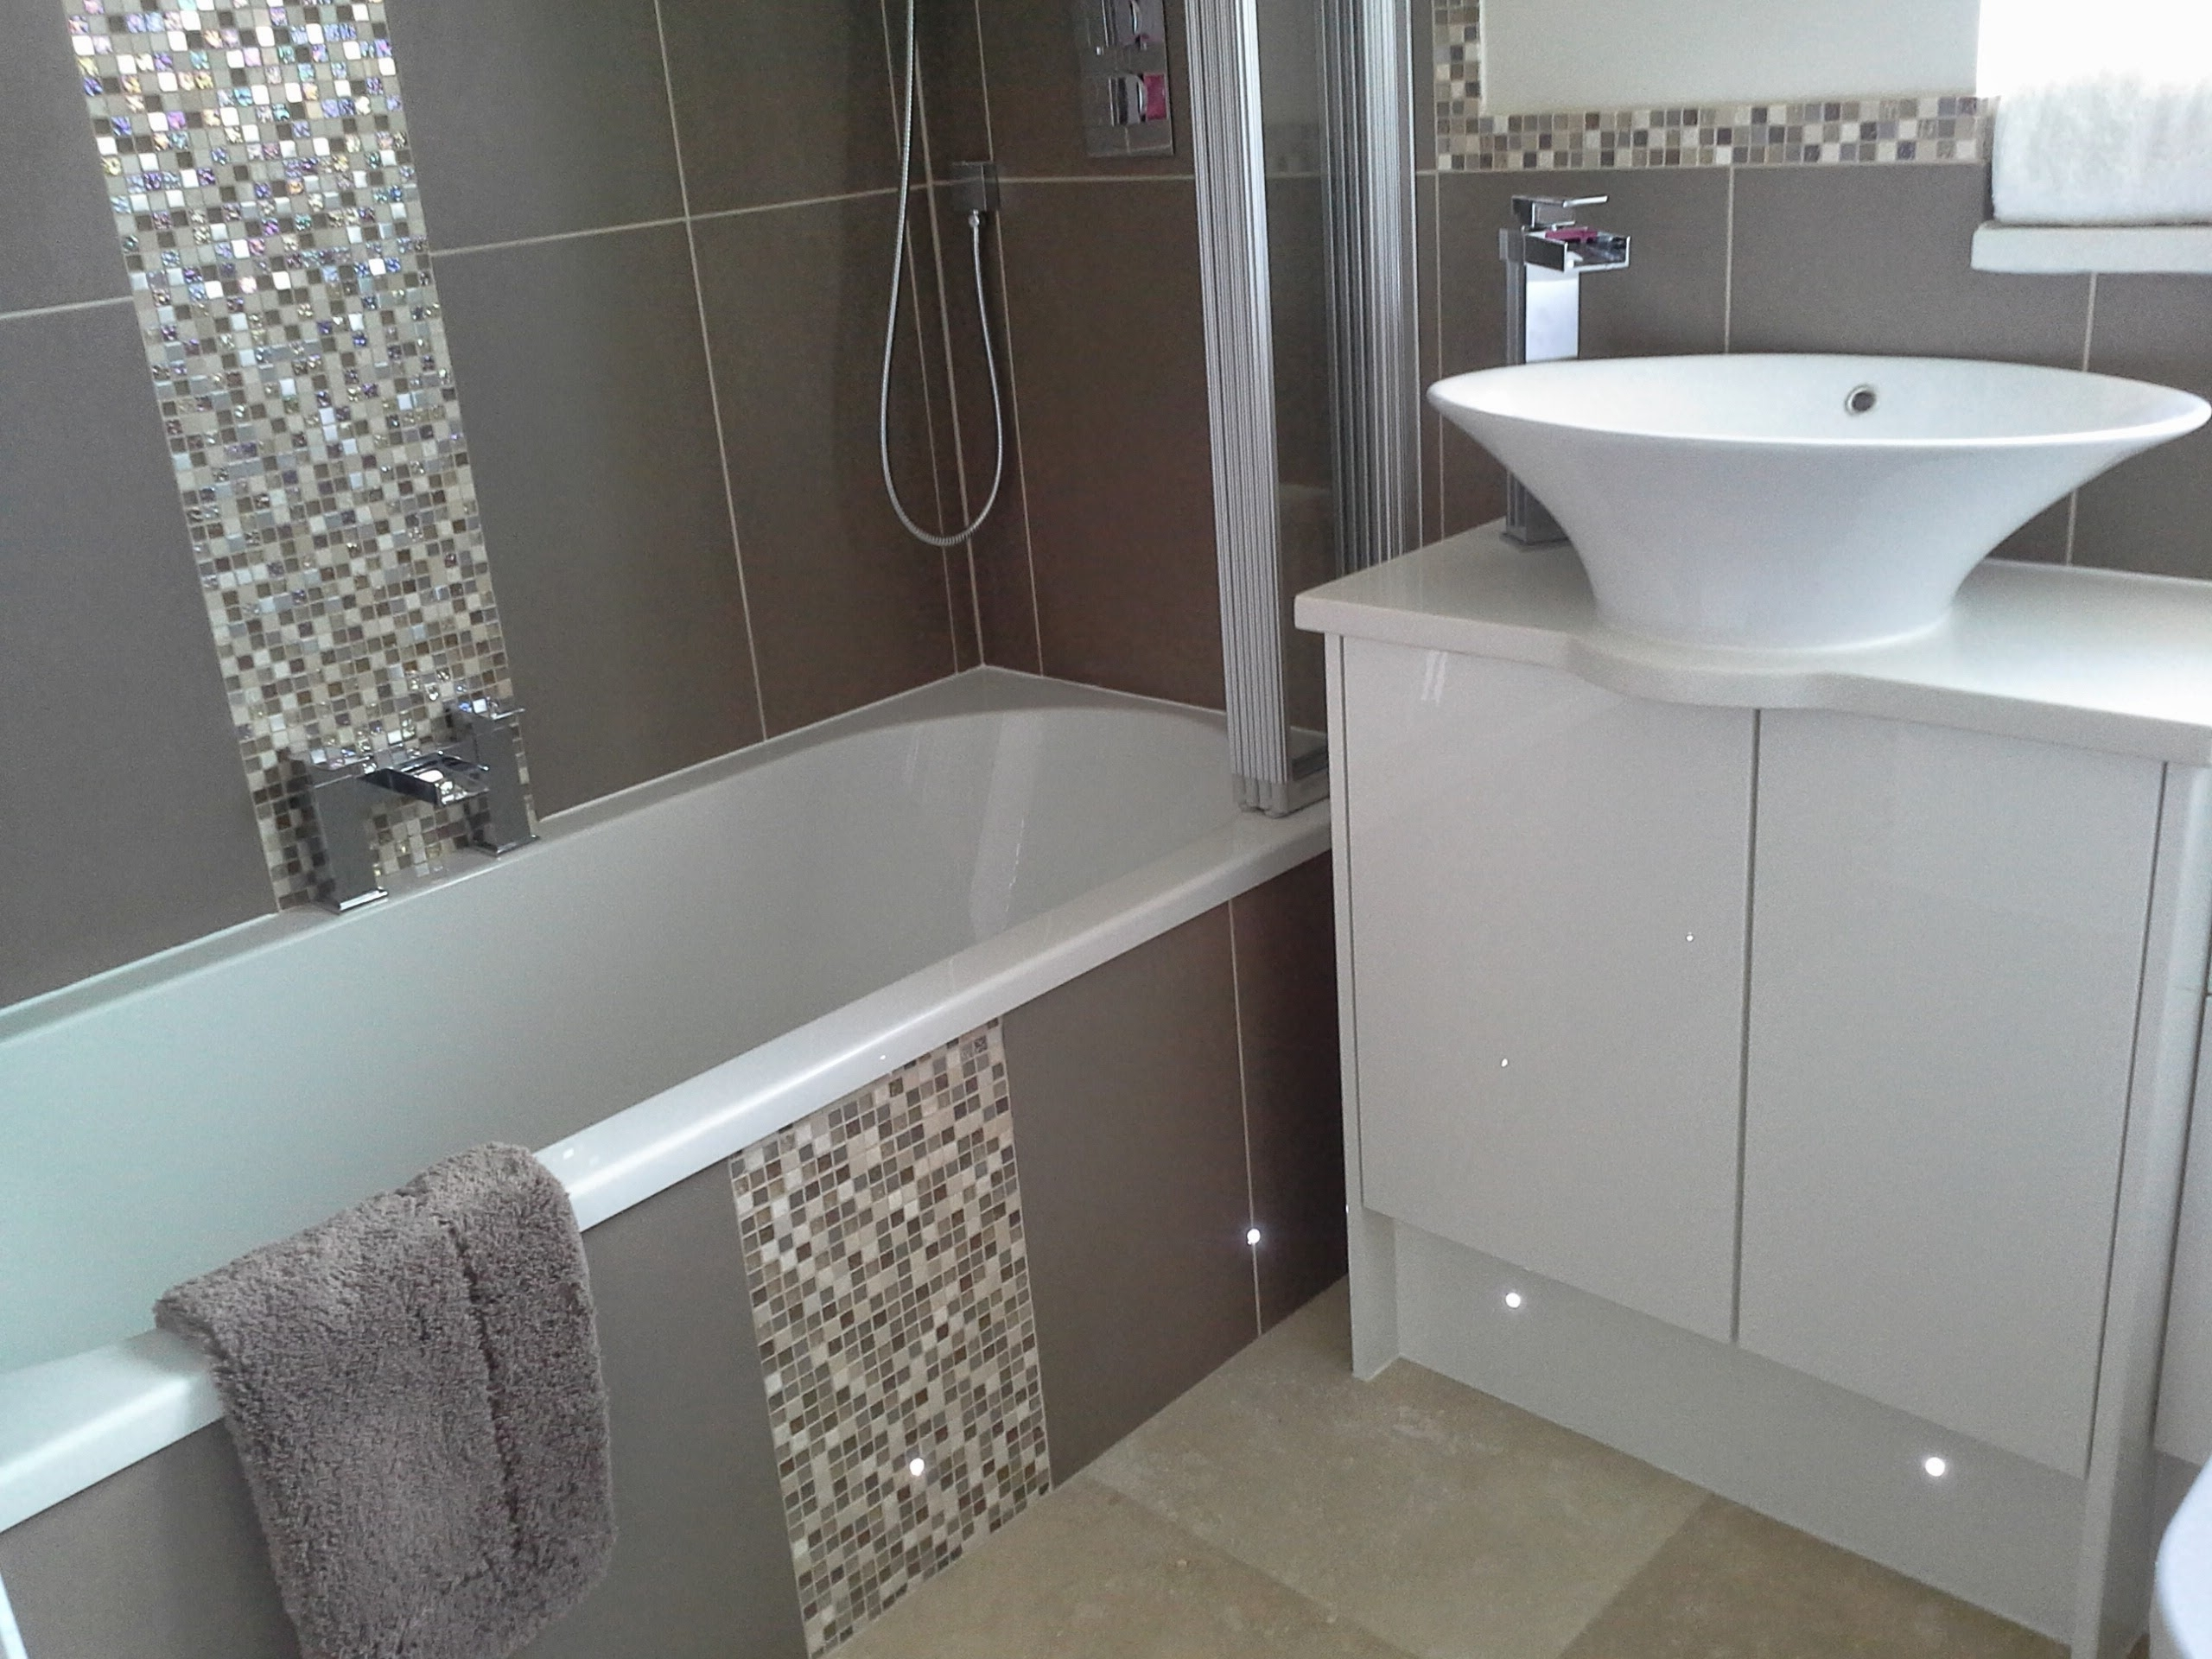 Www Wickes Bathrooms 28 Images Wickes Bathrooms Showers 10+ Wickes Bathroom Design Inspirations